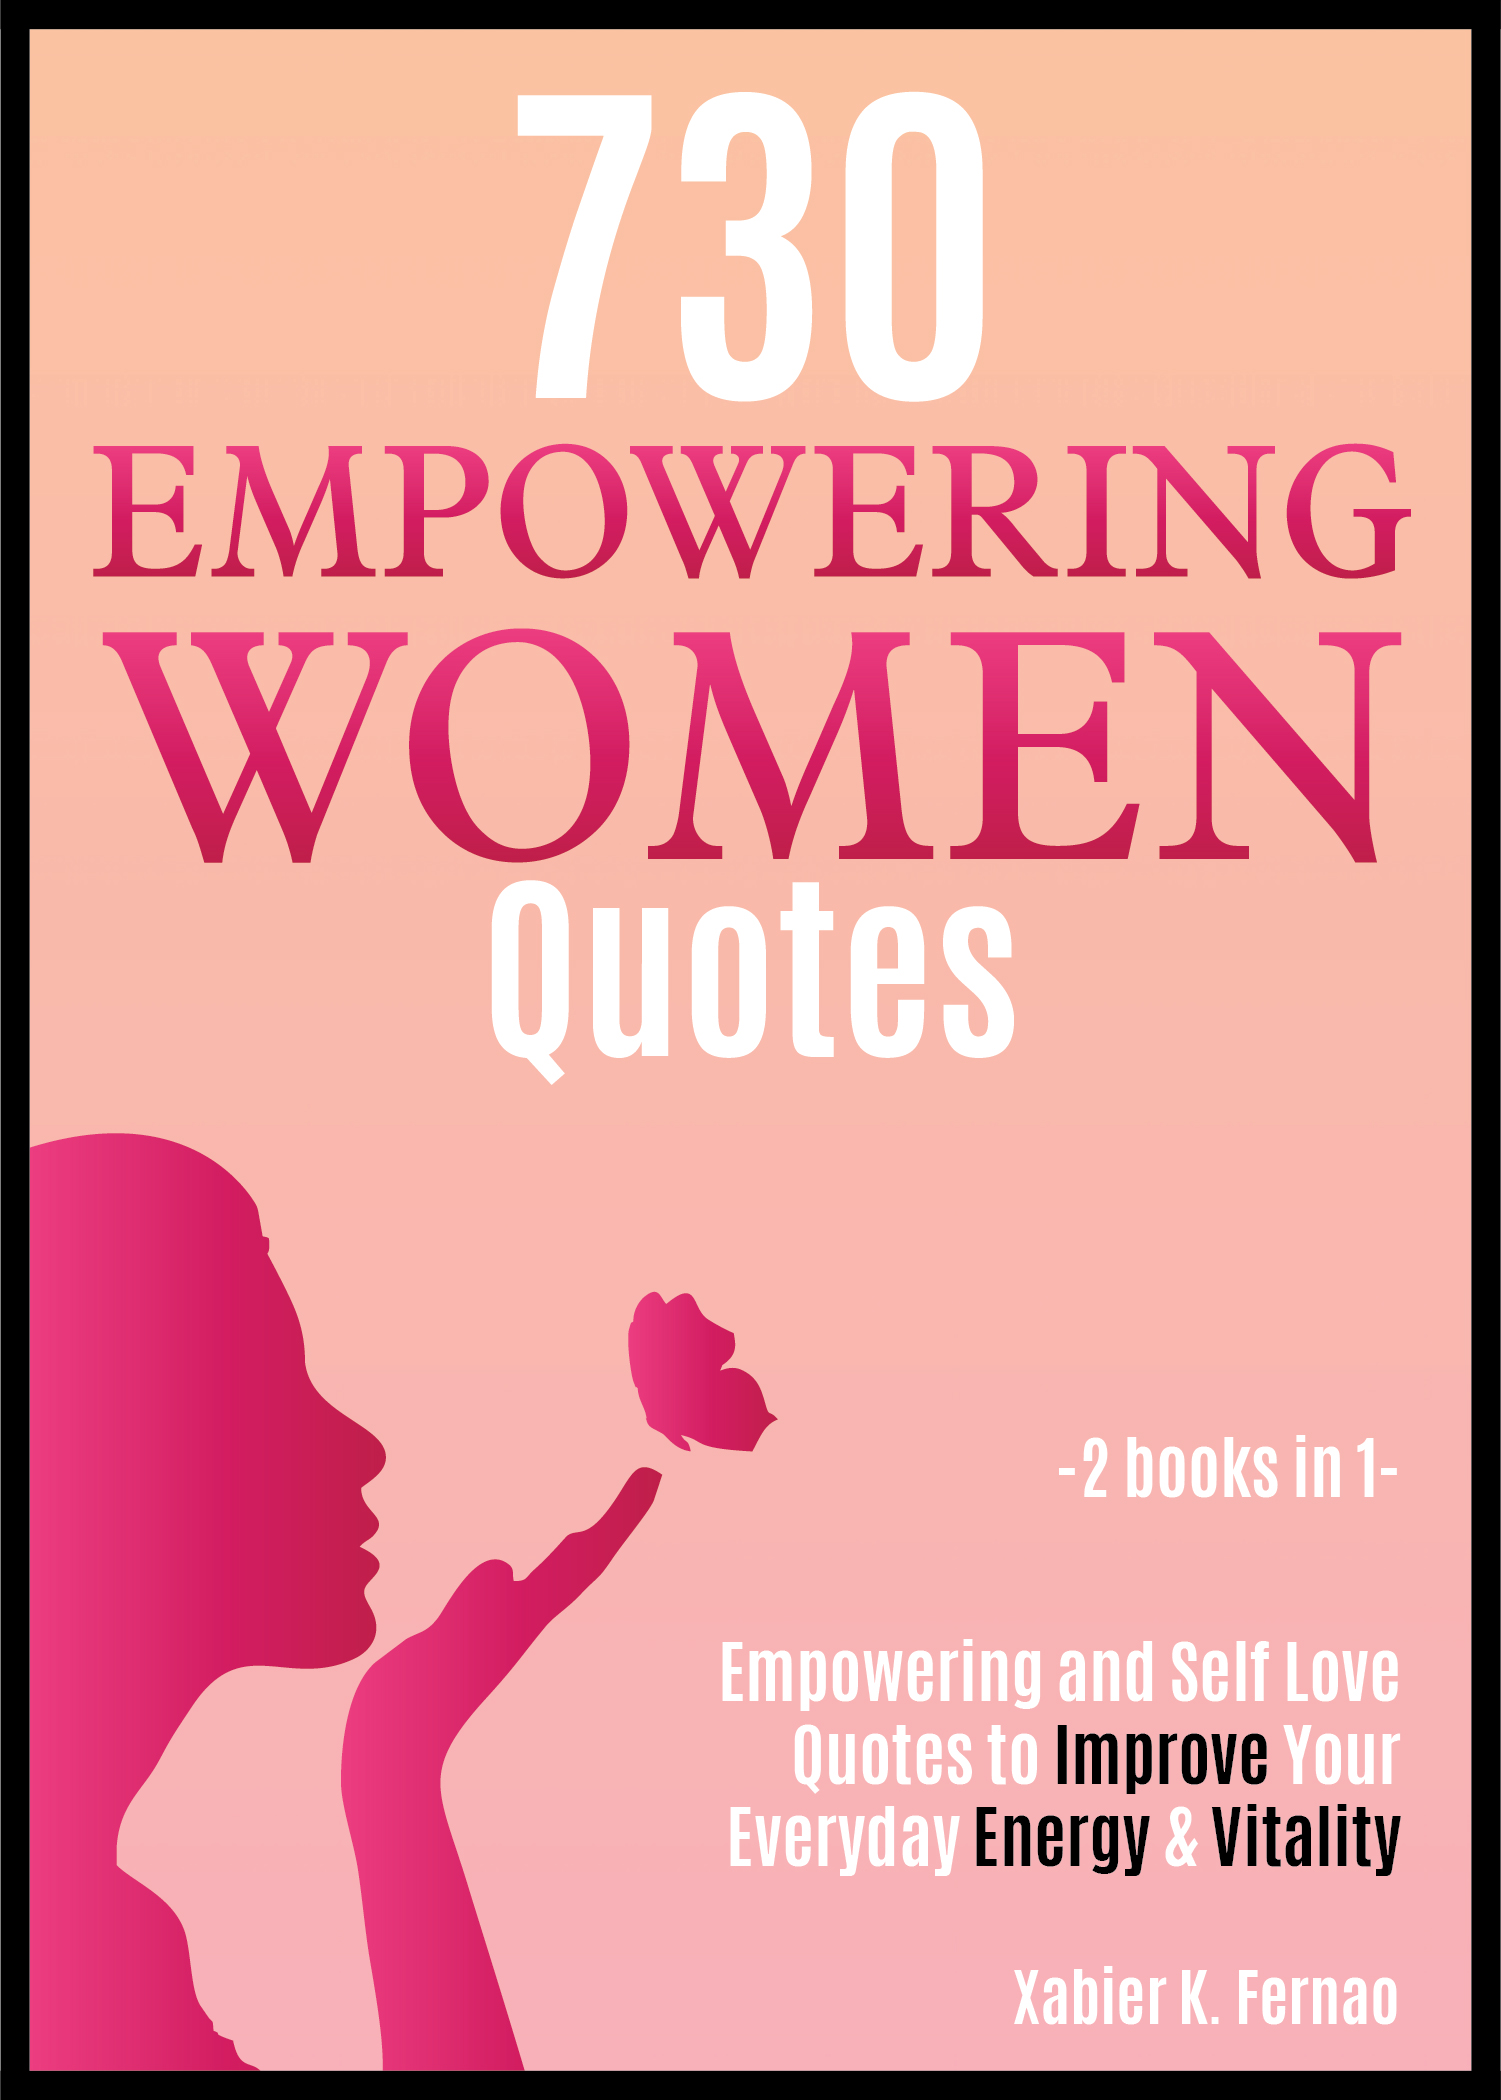 730 empowering women quotes